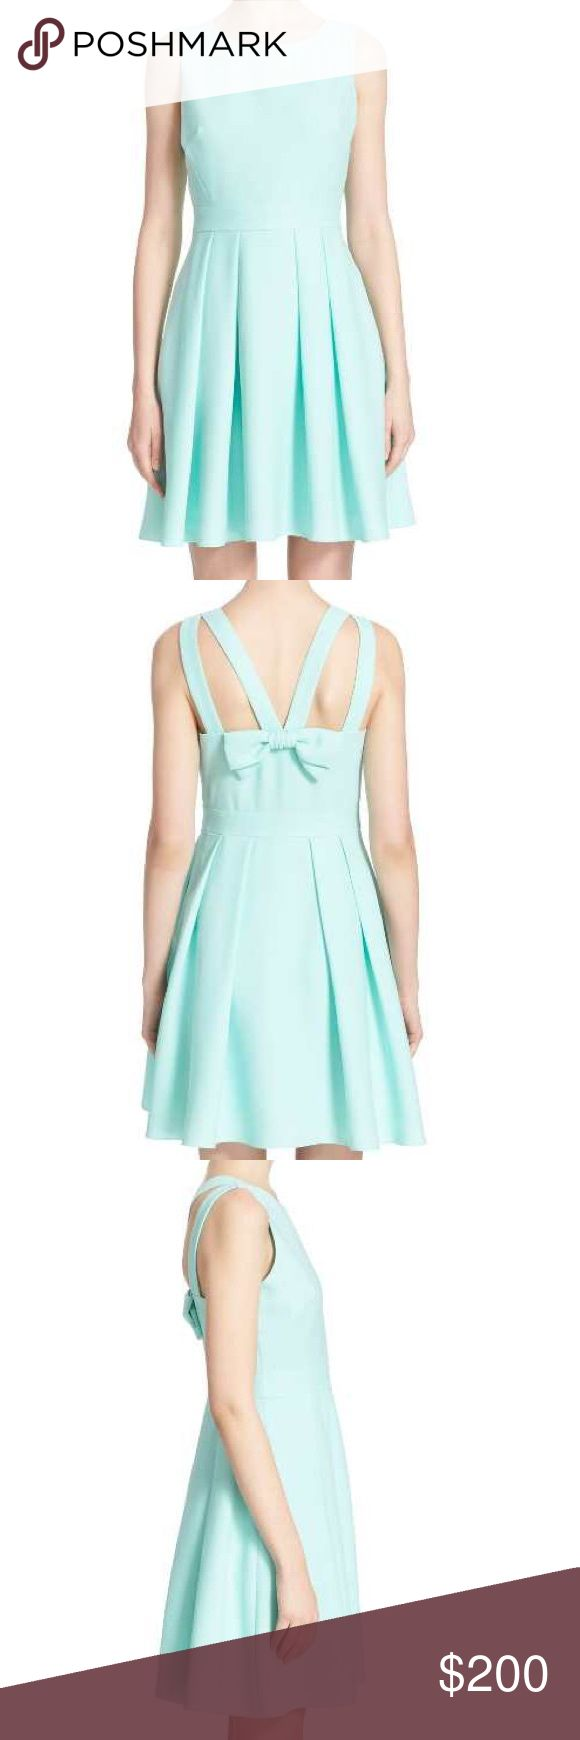 Kate Spade bow back dress-size 14 NWT-mint color Brand new kate Spade bow back crepe fit and flare dress-size 14-NWT color is mint liqueur kate spade Dresses